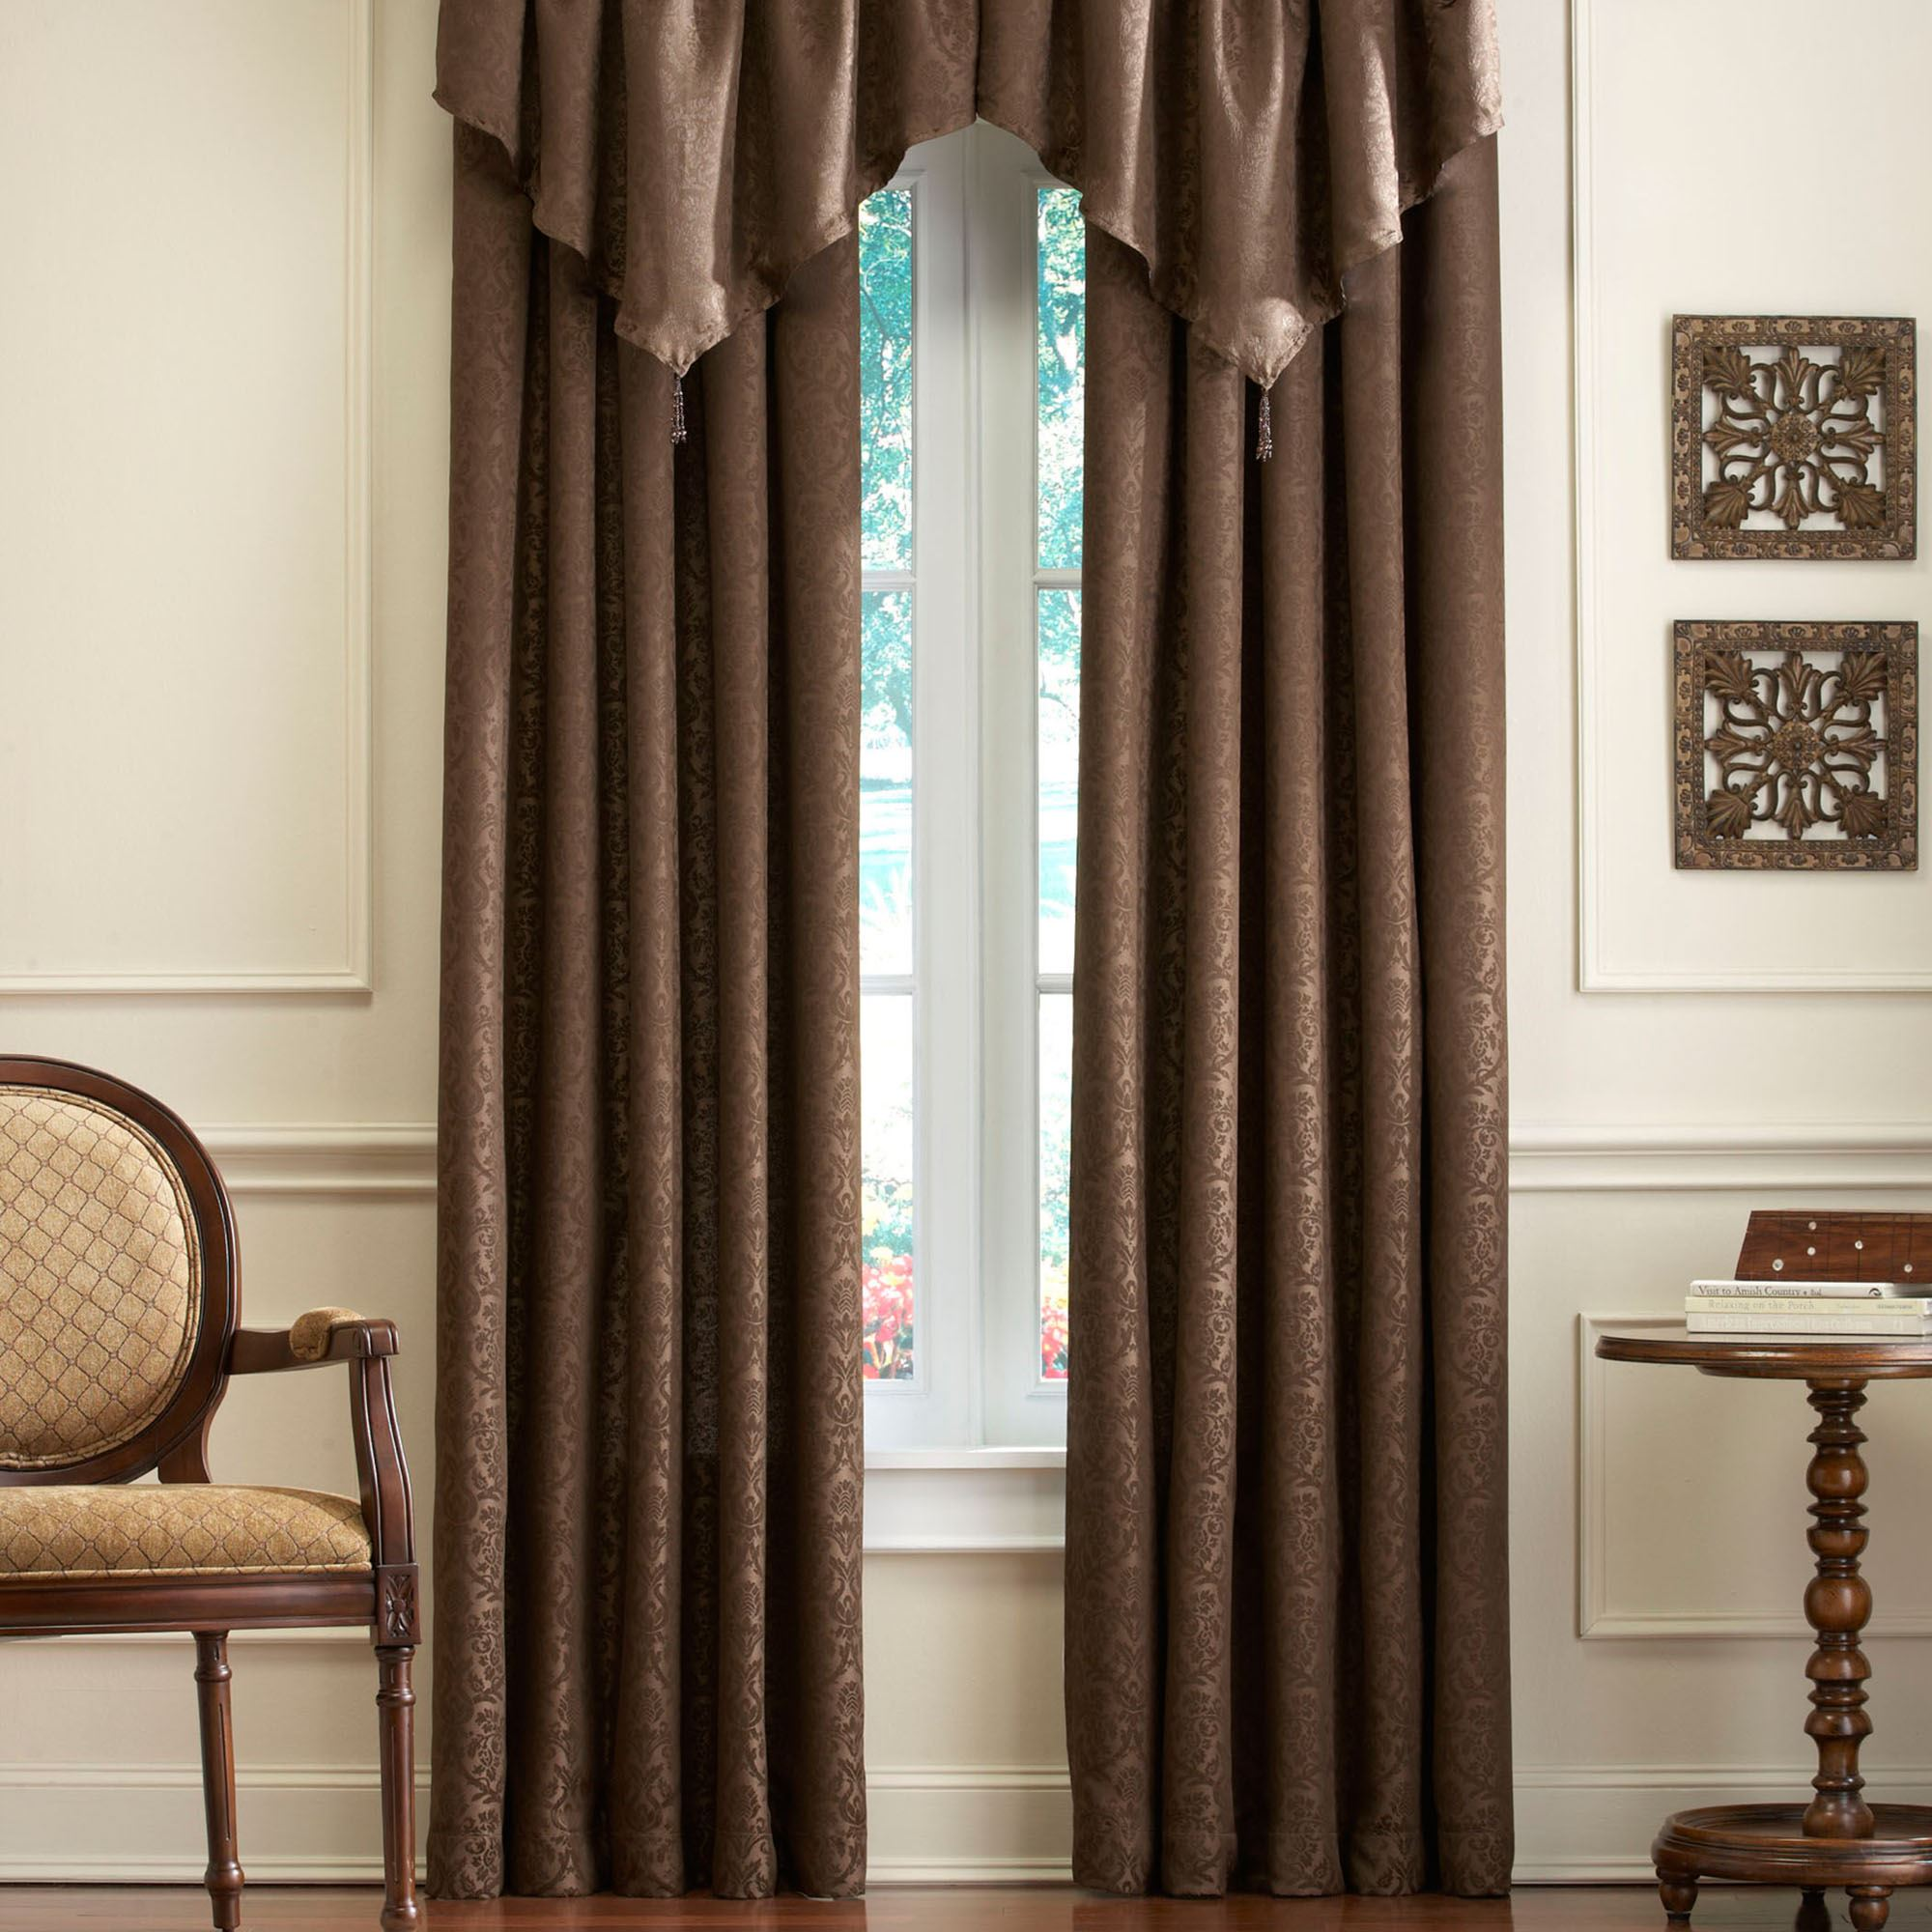 curtains living curtain with office co baskan on idai for window ideas and luxury room windows treatment treatments